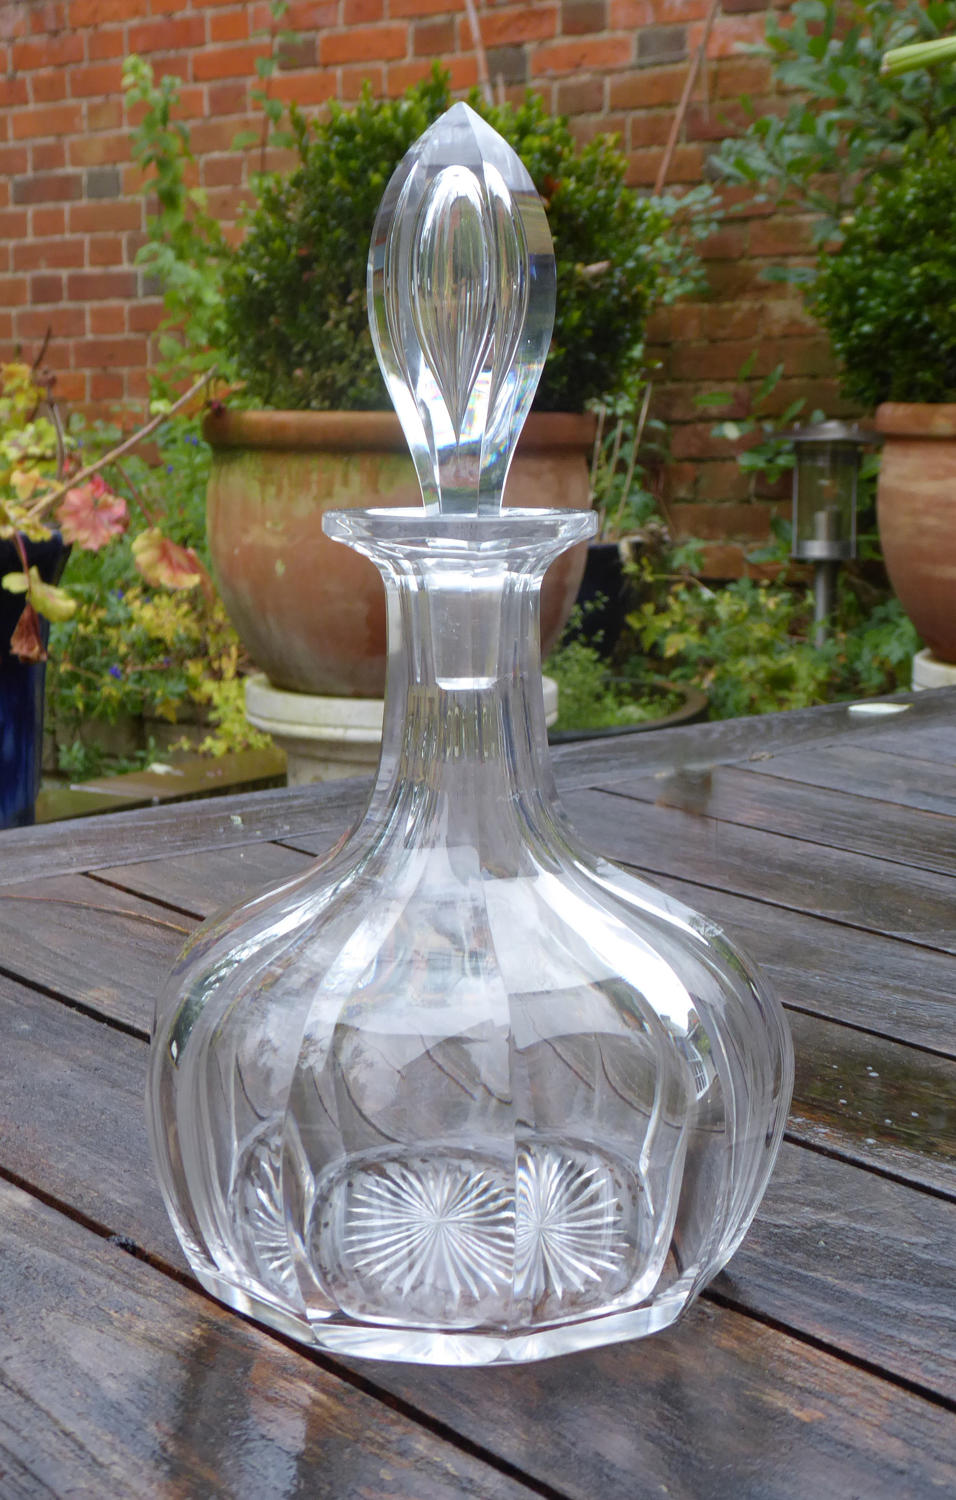 6639 A fine early Victorian ship's decanter